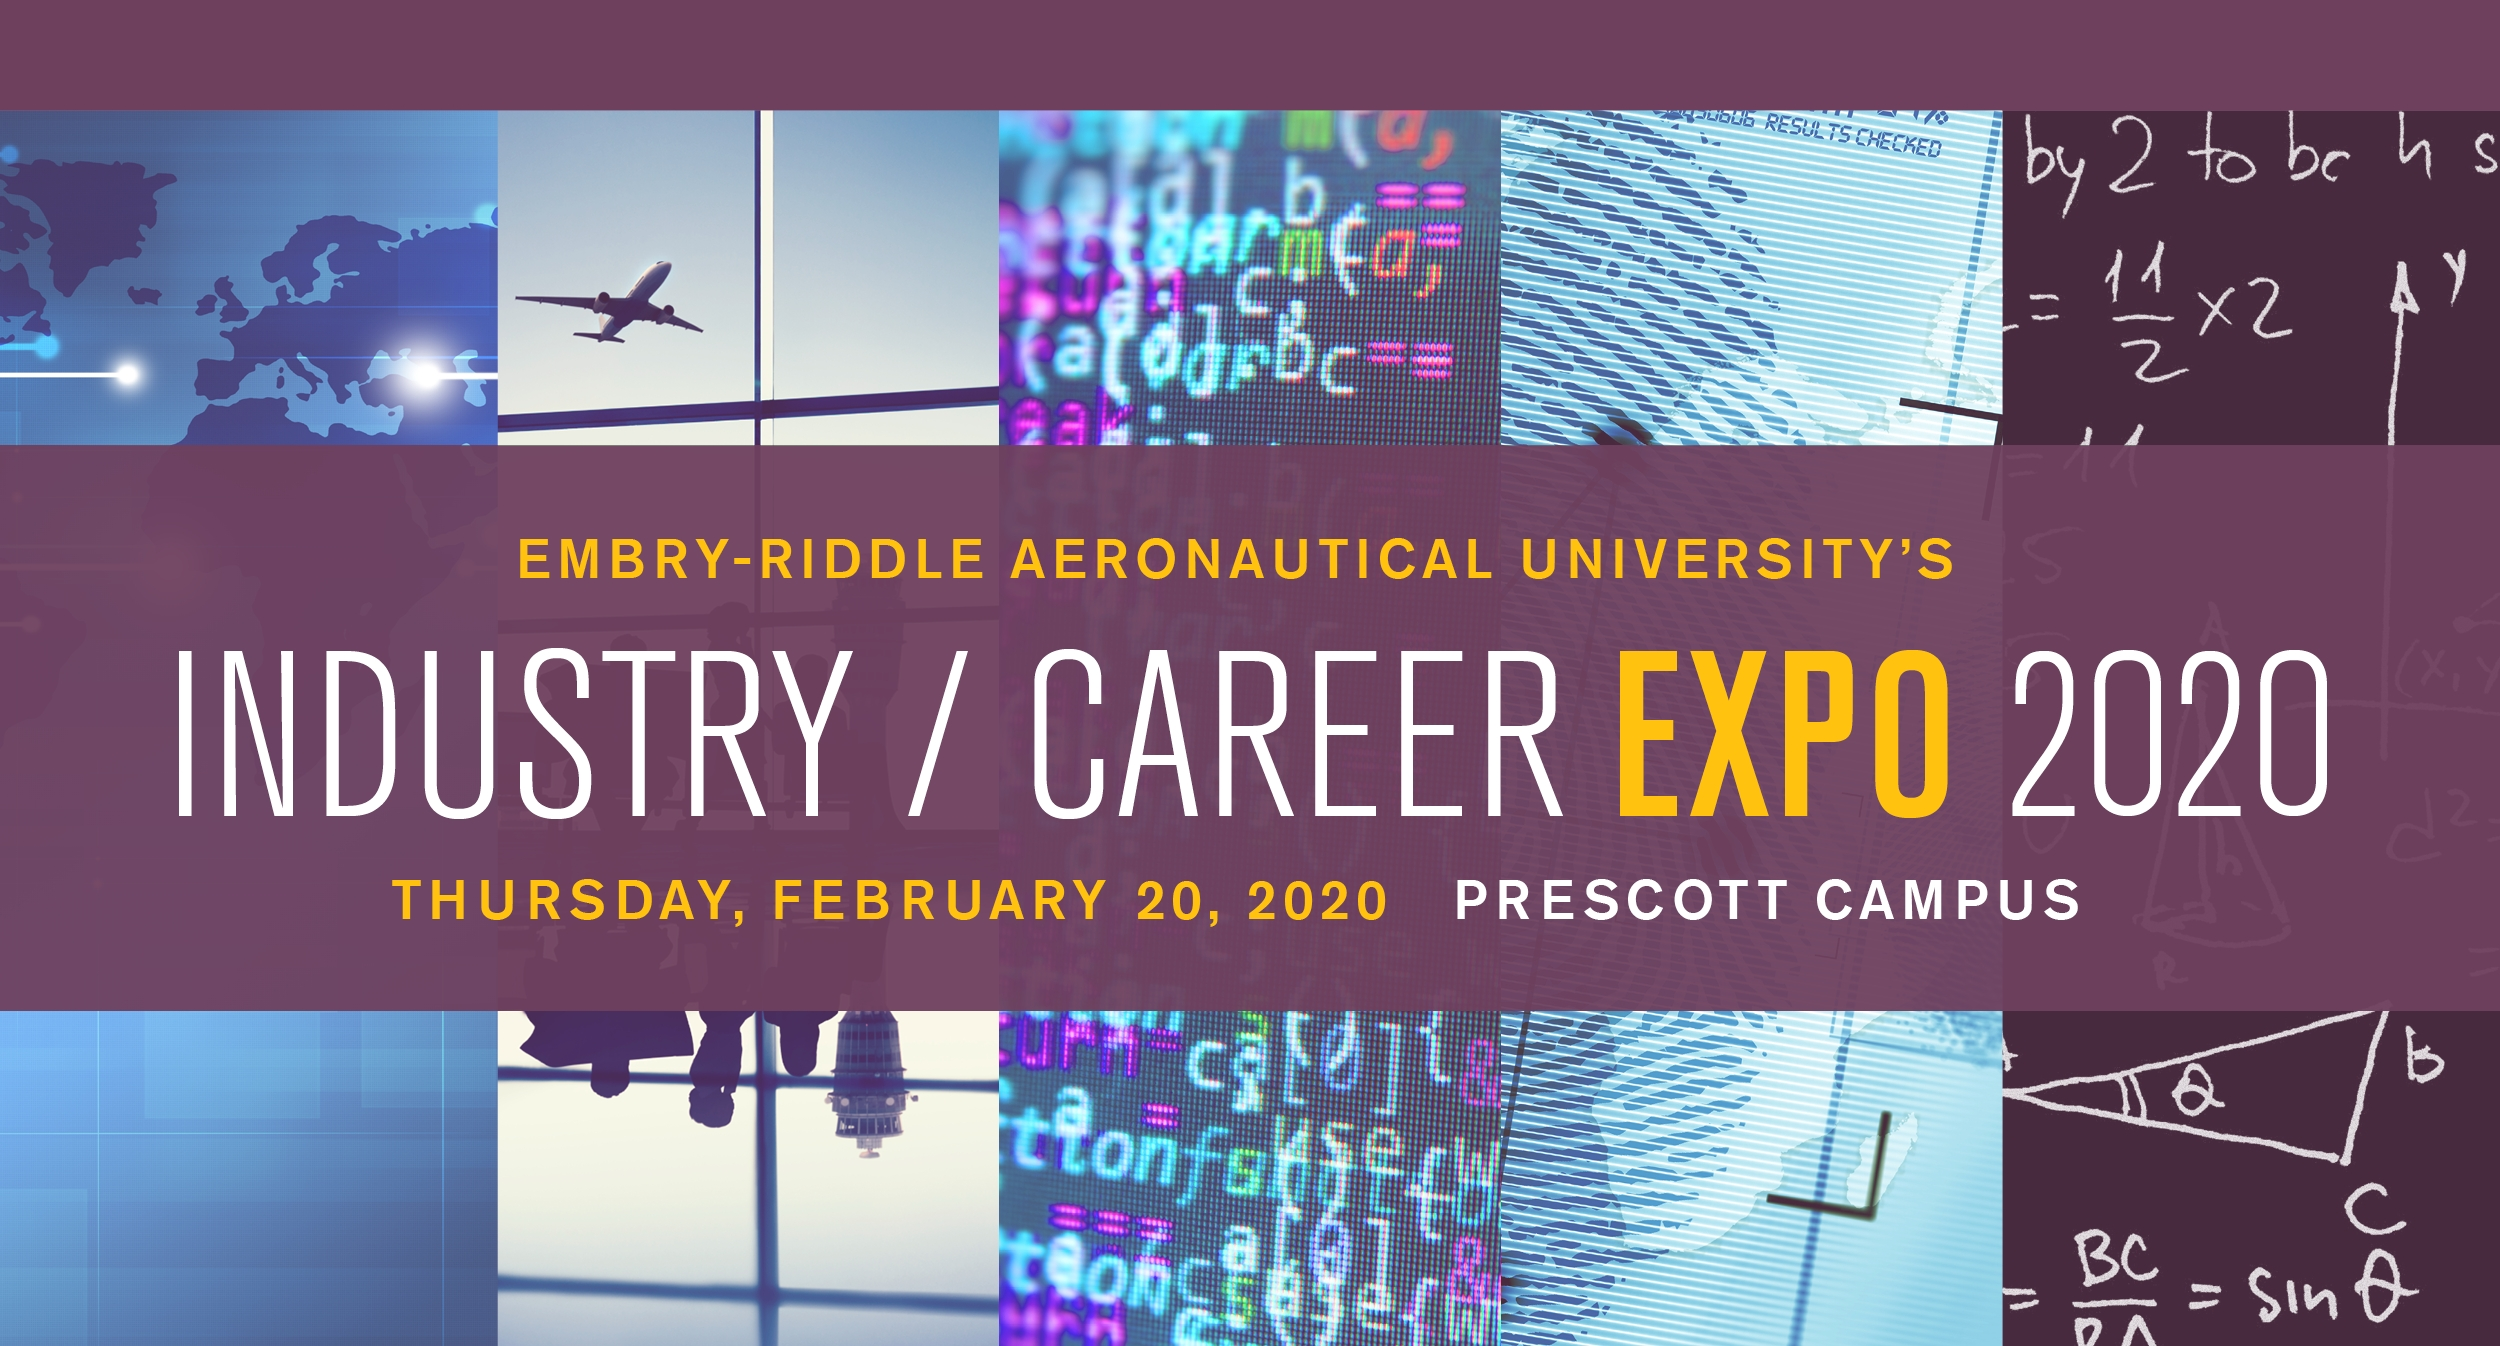 Spring 2020 Expos: Save The Dates - Career Services   Embry